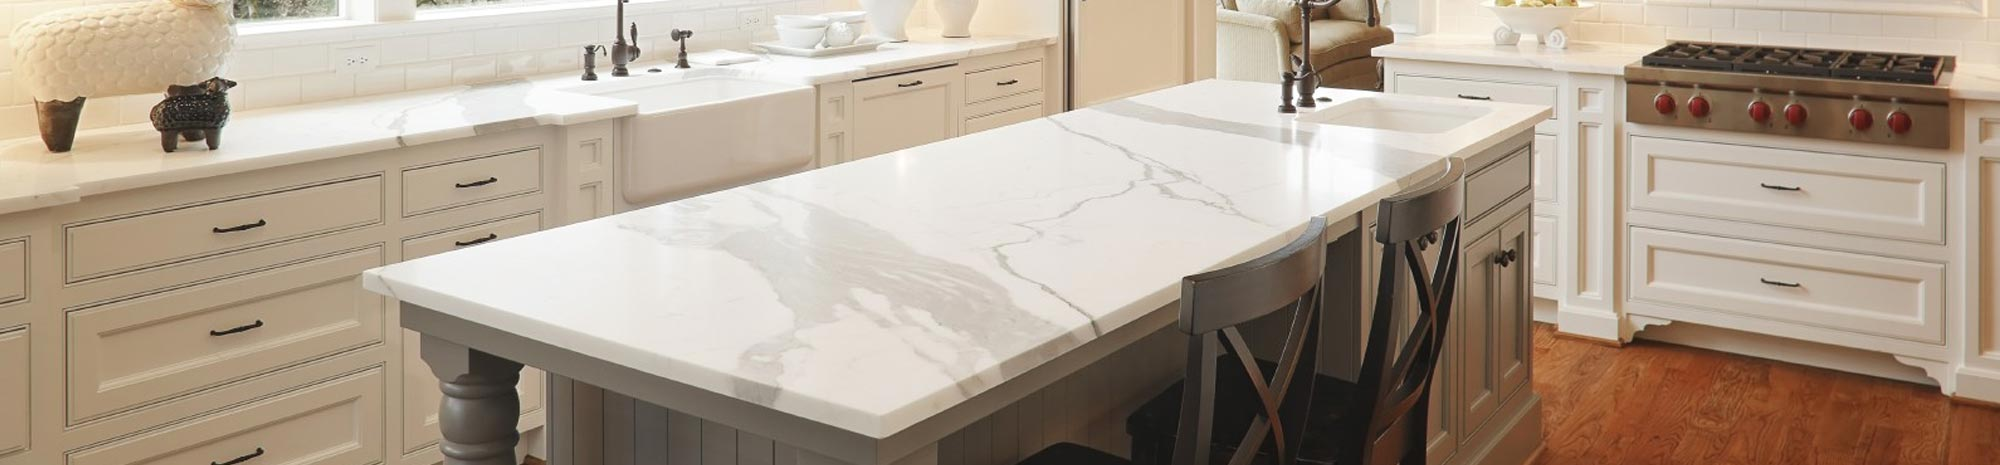 Chicago Chicago White Quartz Countertops : Licensed, Bonded and Insured